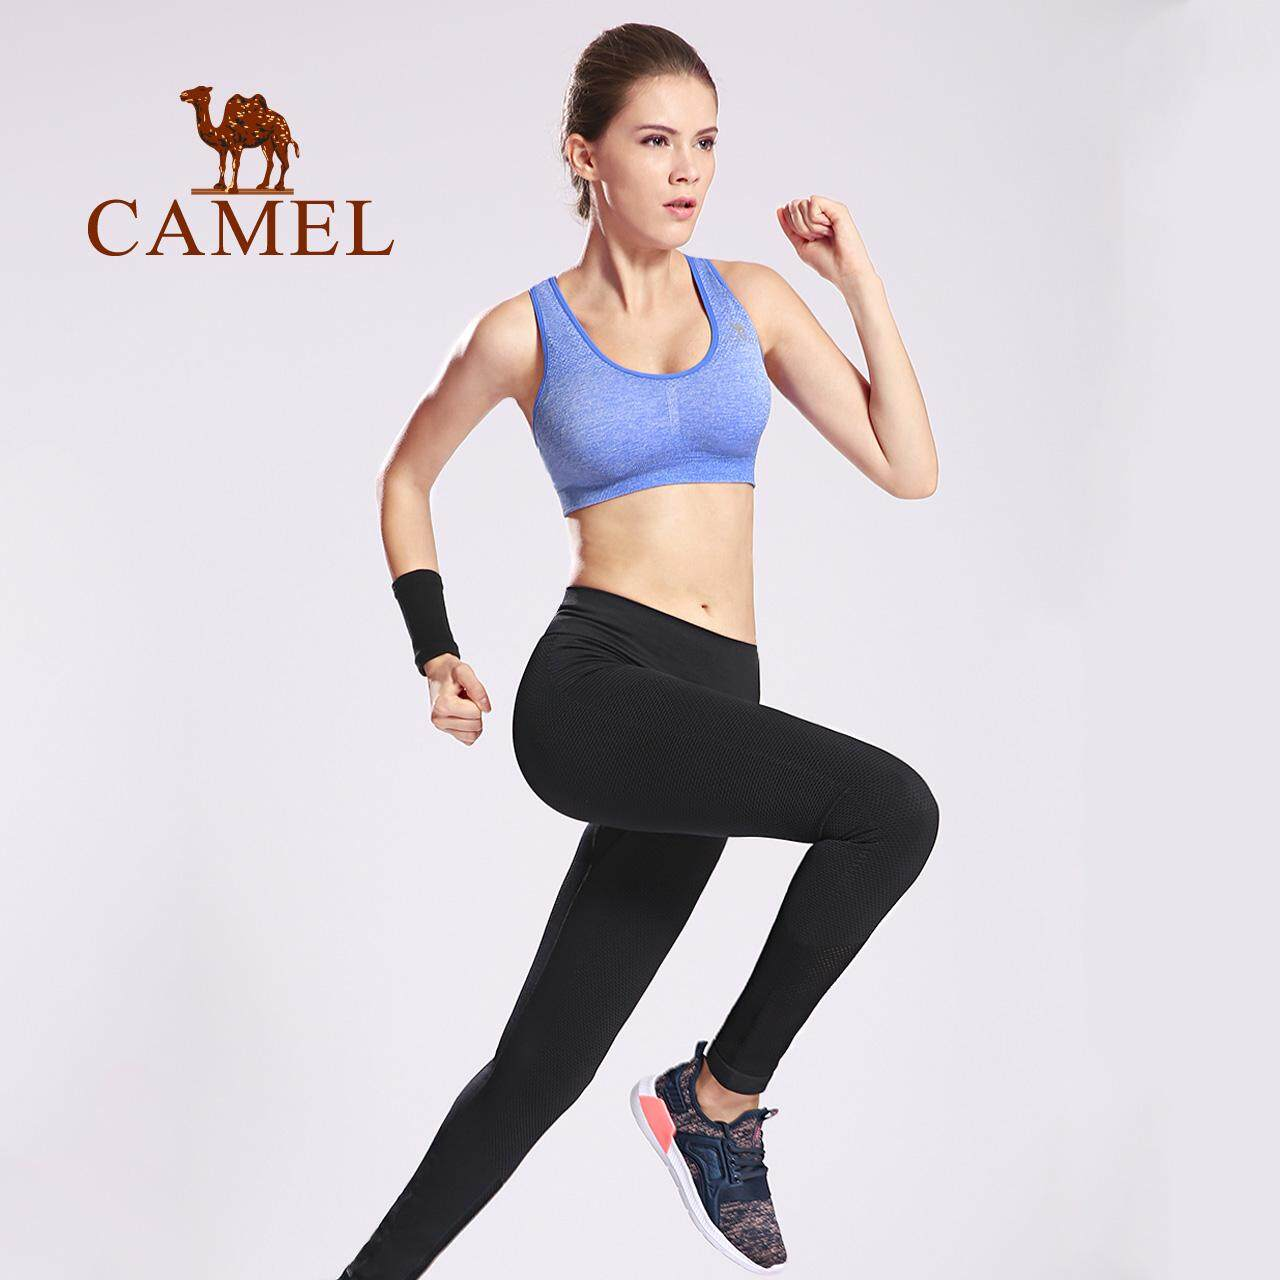 CAMEL women's high waist sports pants breathable elastic tights comfortable fitness running mesh knitted trousers